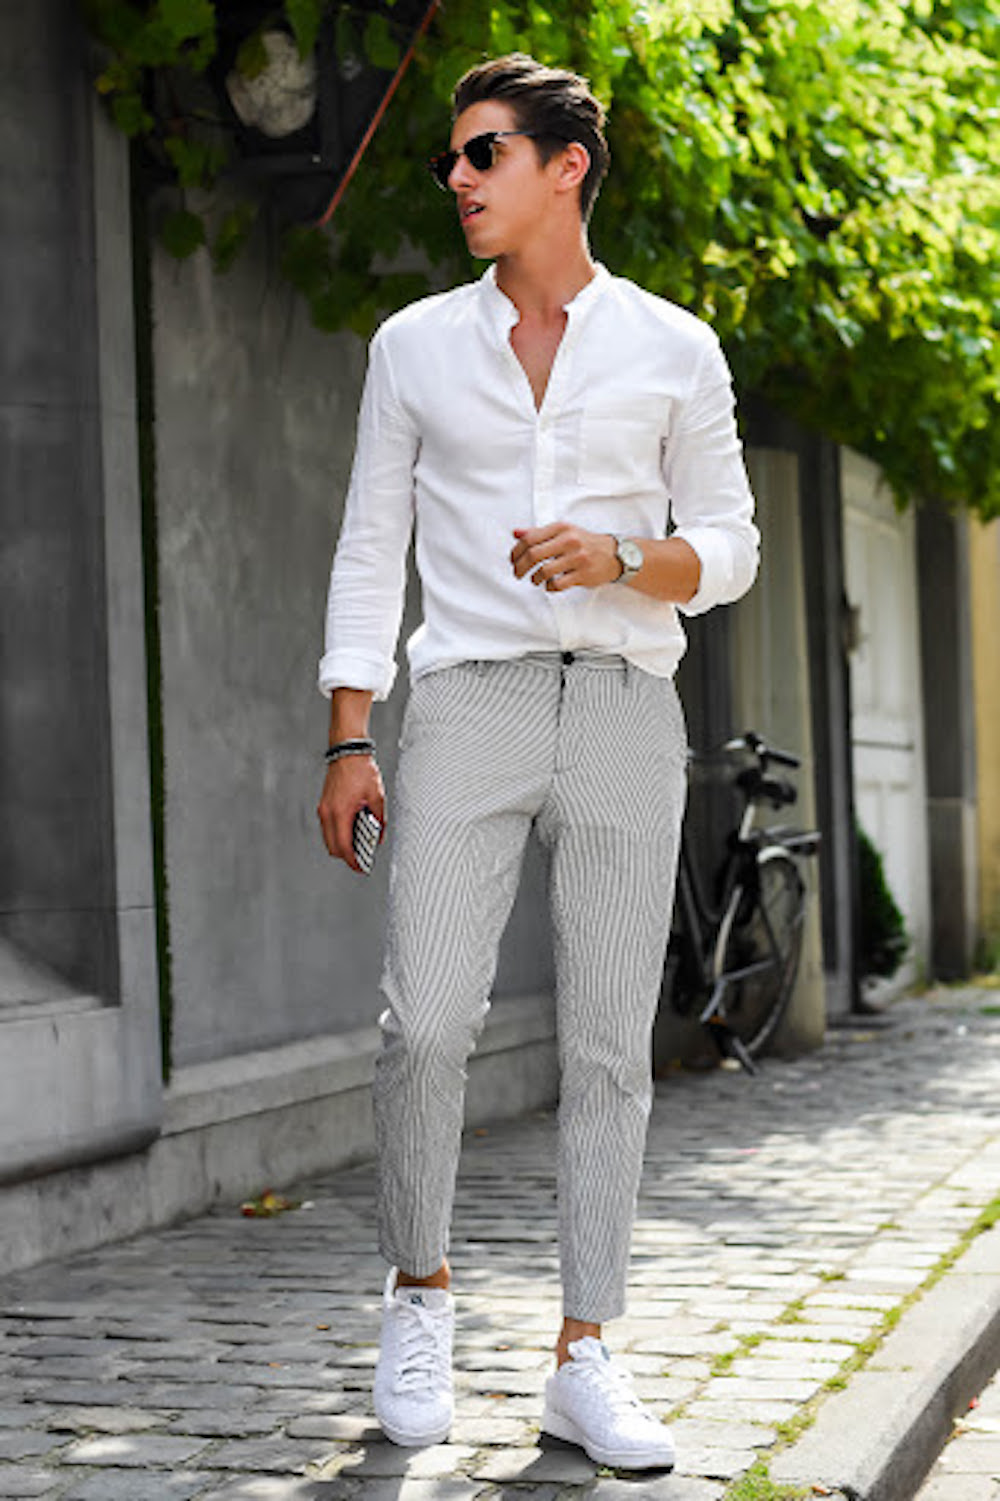 Casual Men's Summer Style Outfit